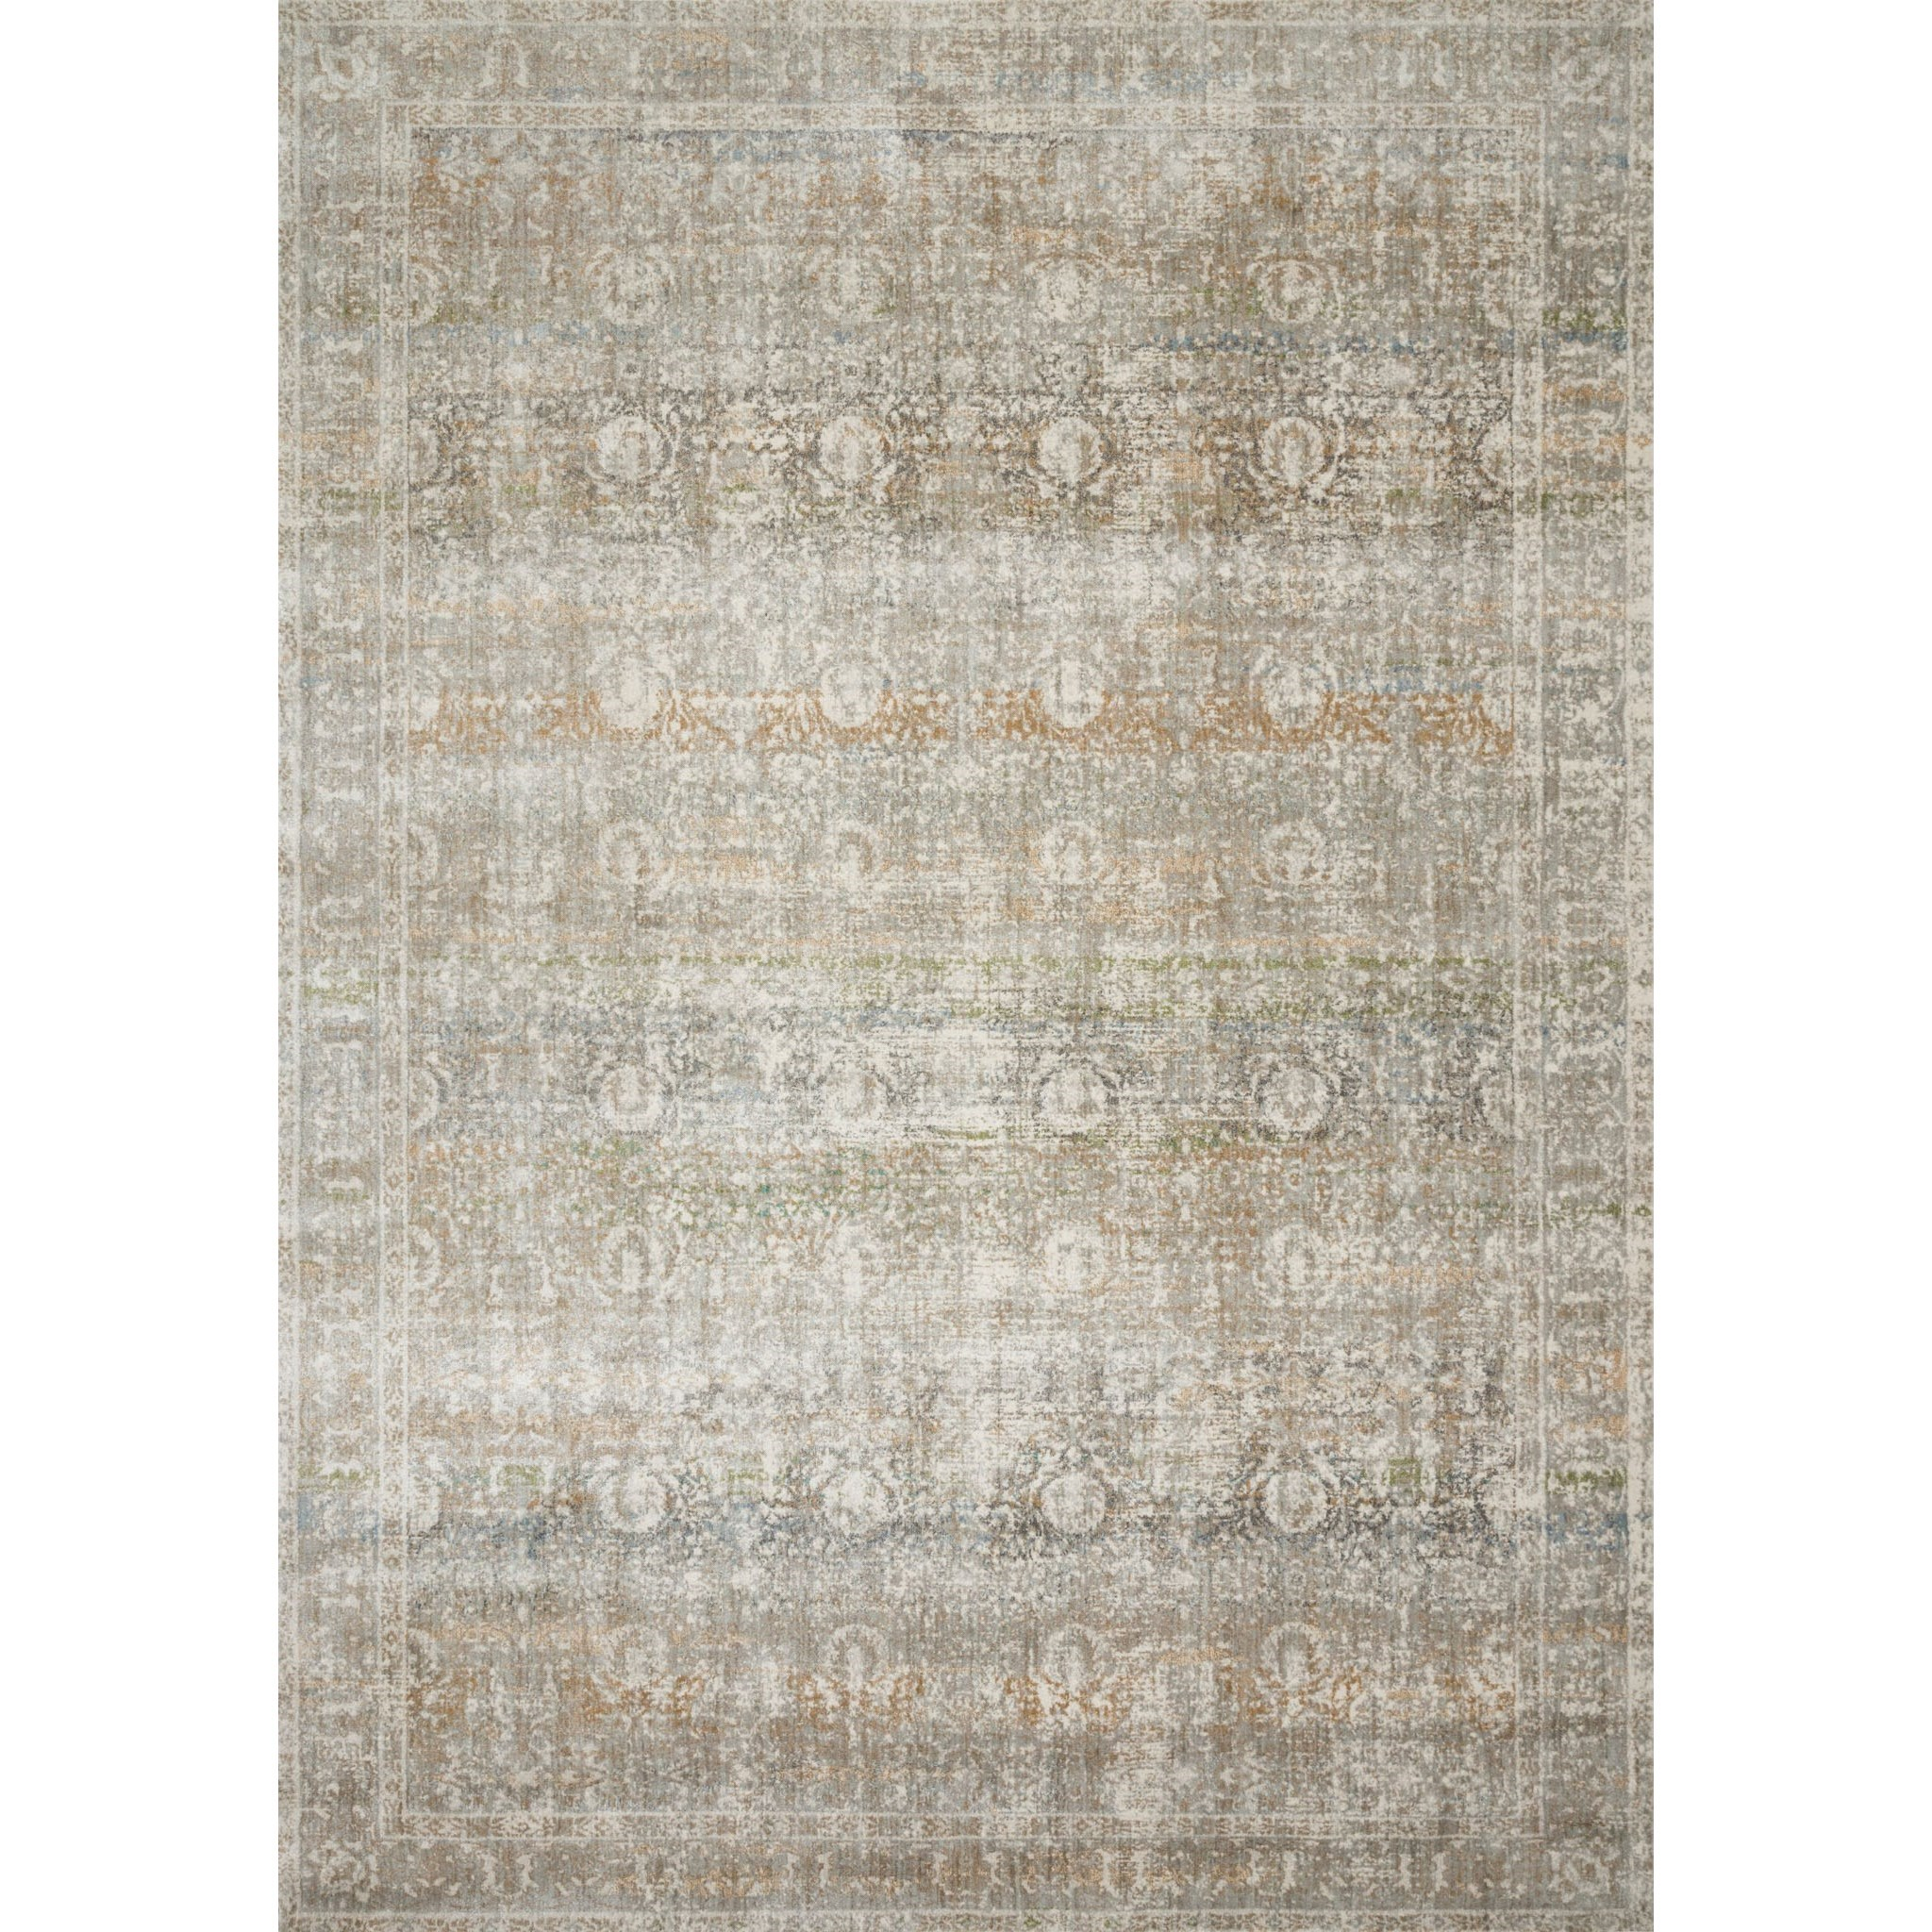 Anastasia 13' x 18' Rug by Loloi Rugs at Virginia Furniture Market